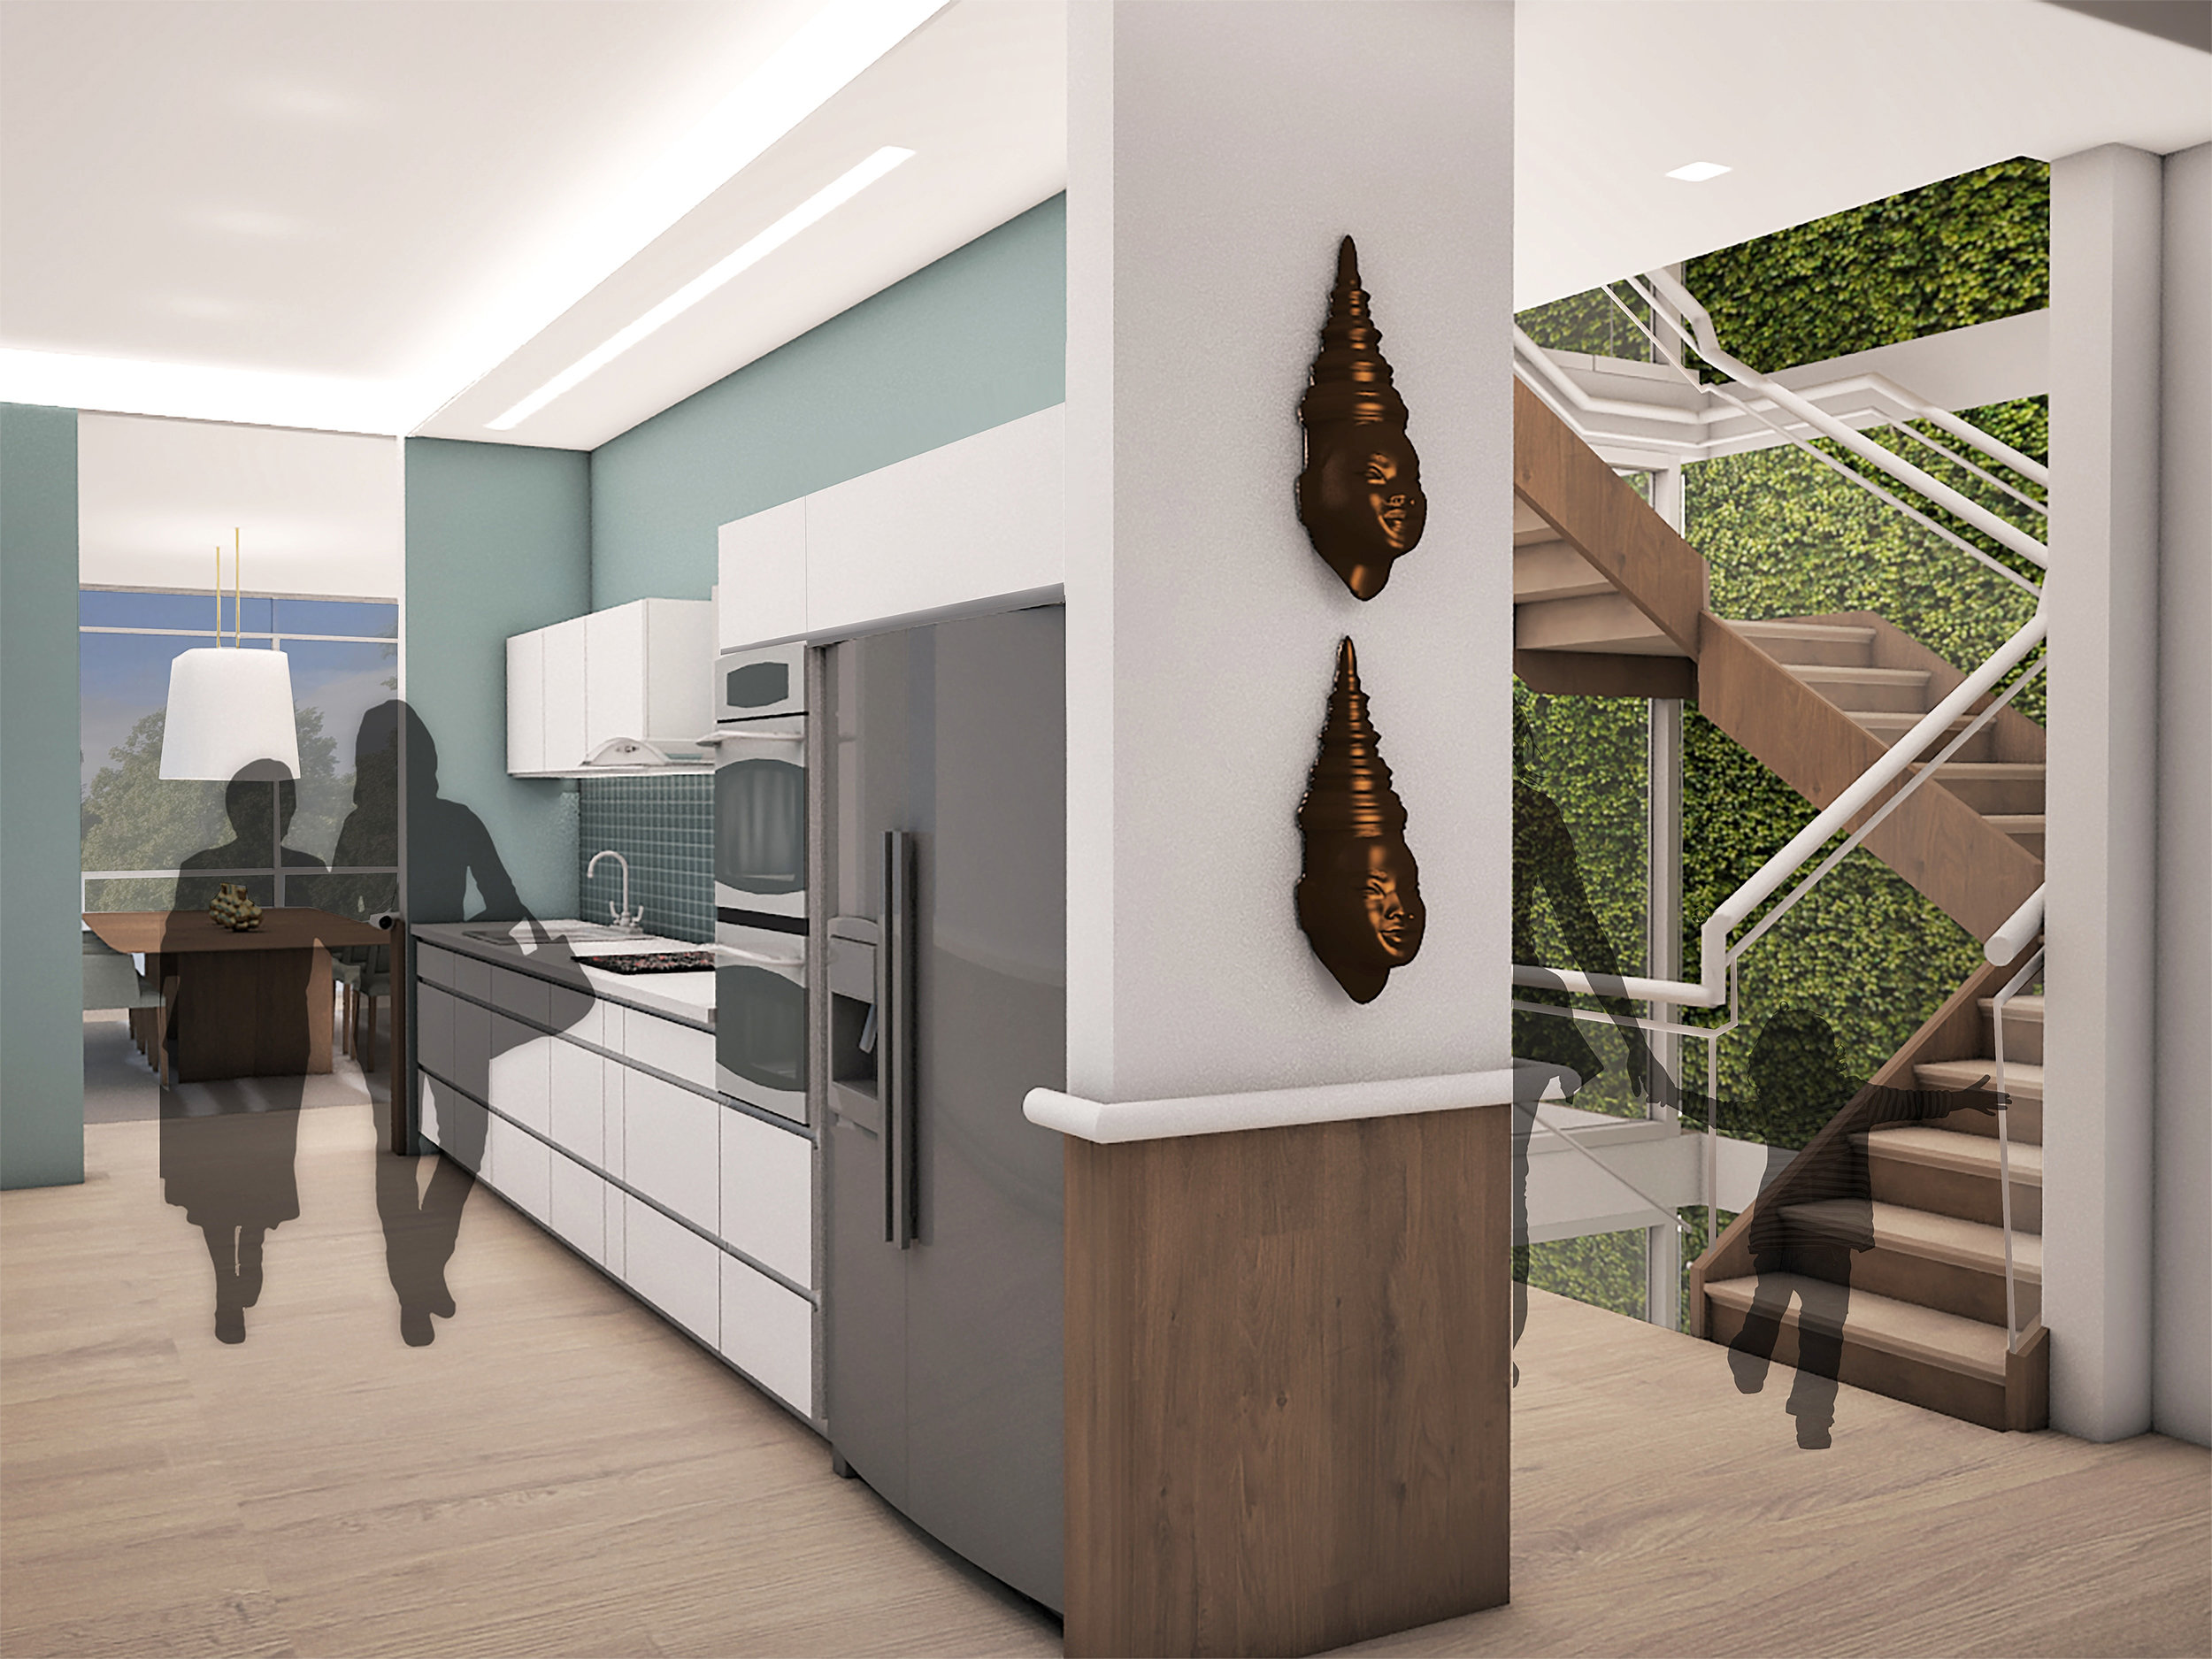 silvia-landinez-sneha-kodi-nadya-chairil-assisted-living-suburban-townhouse-mps-sustainable-interior-environments-residential-project_17022922203_o.jpg